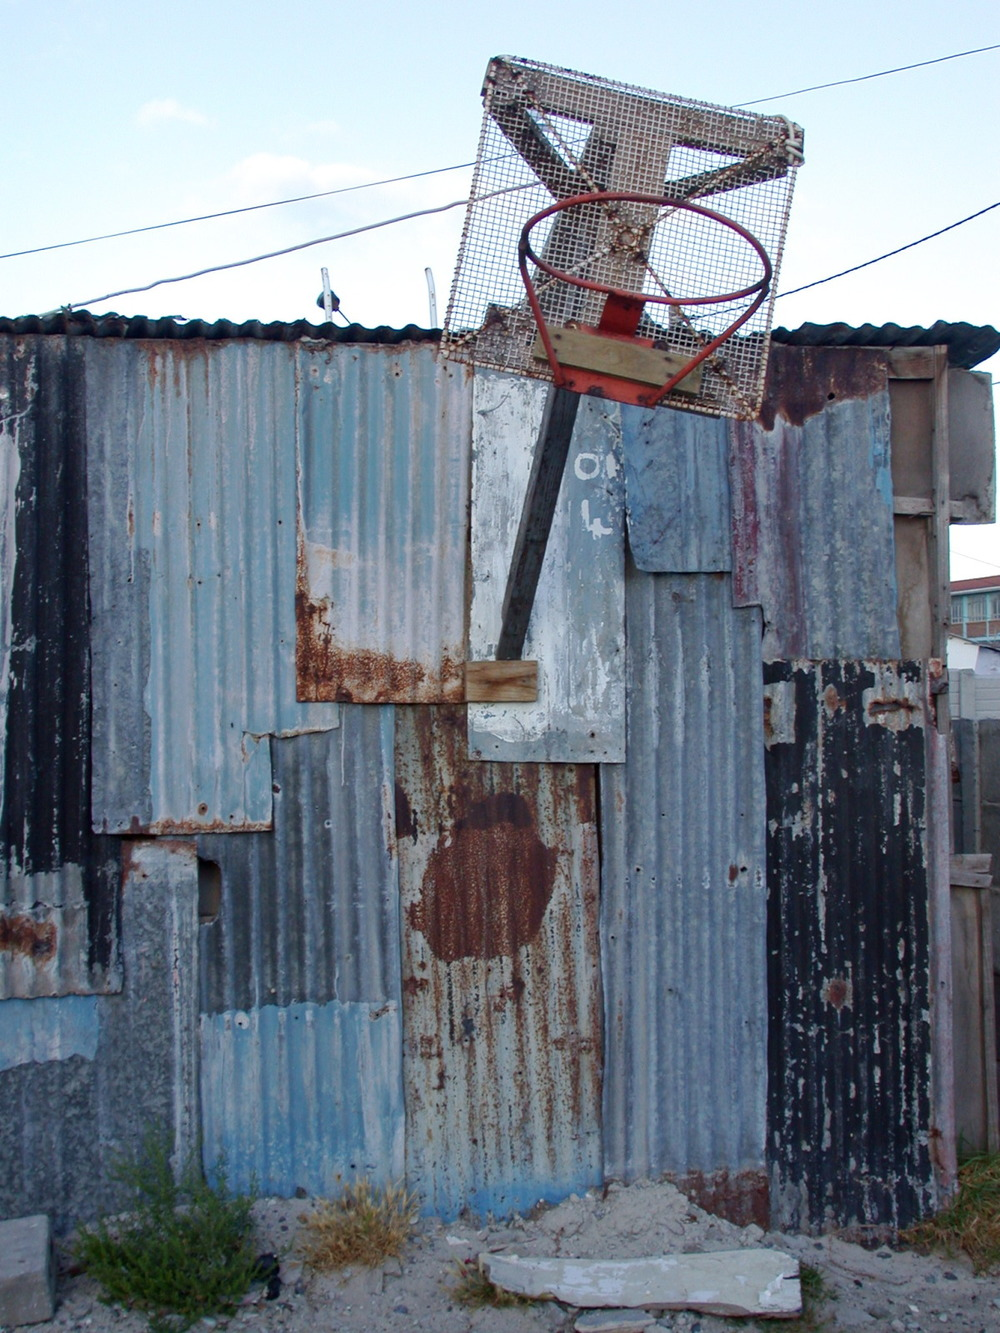 For the love of the game, but no dunking please! Khayelitsha, South Africa